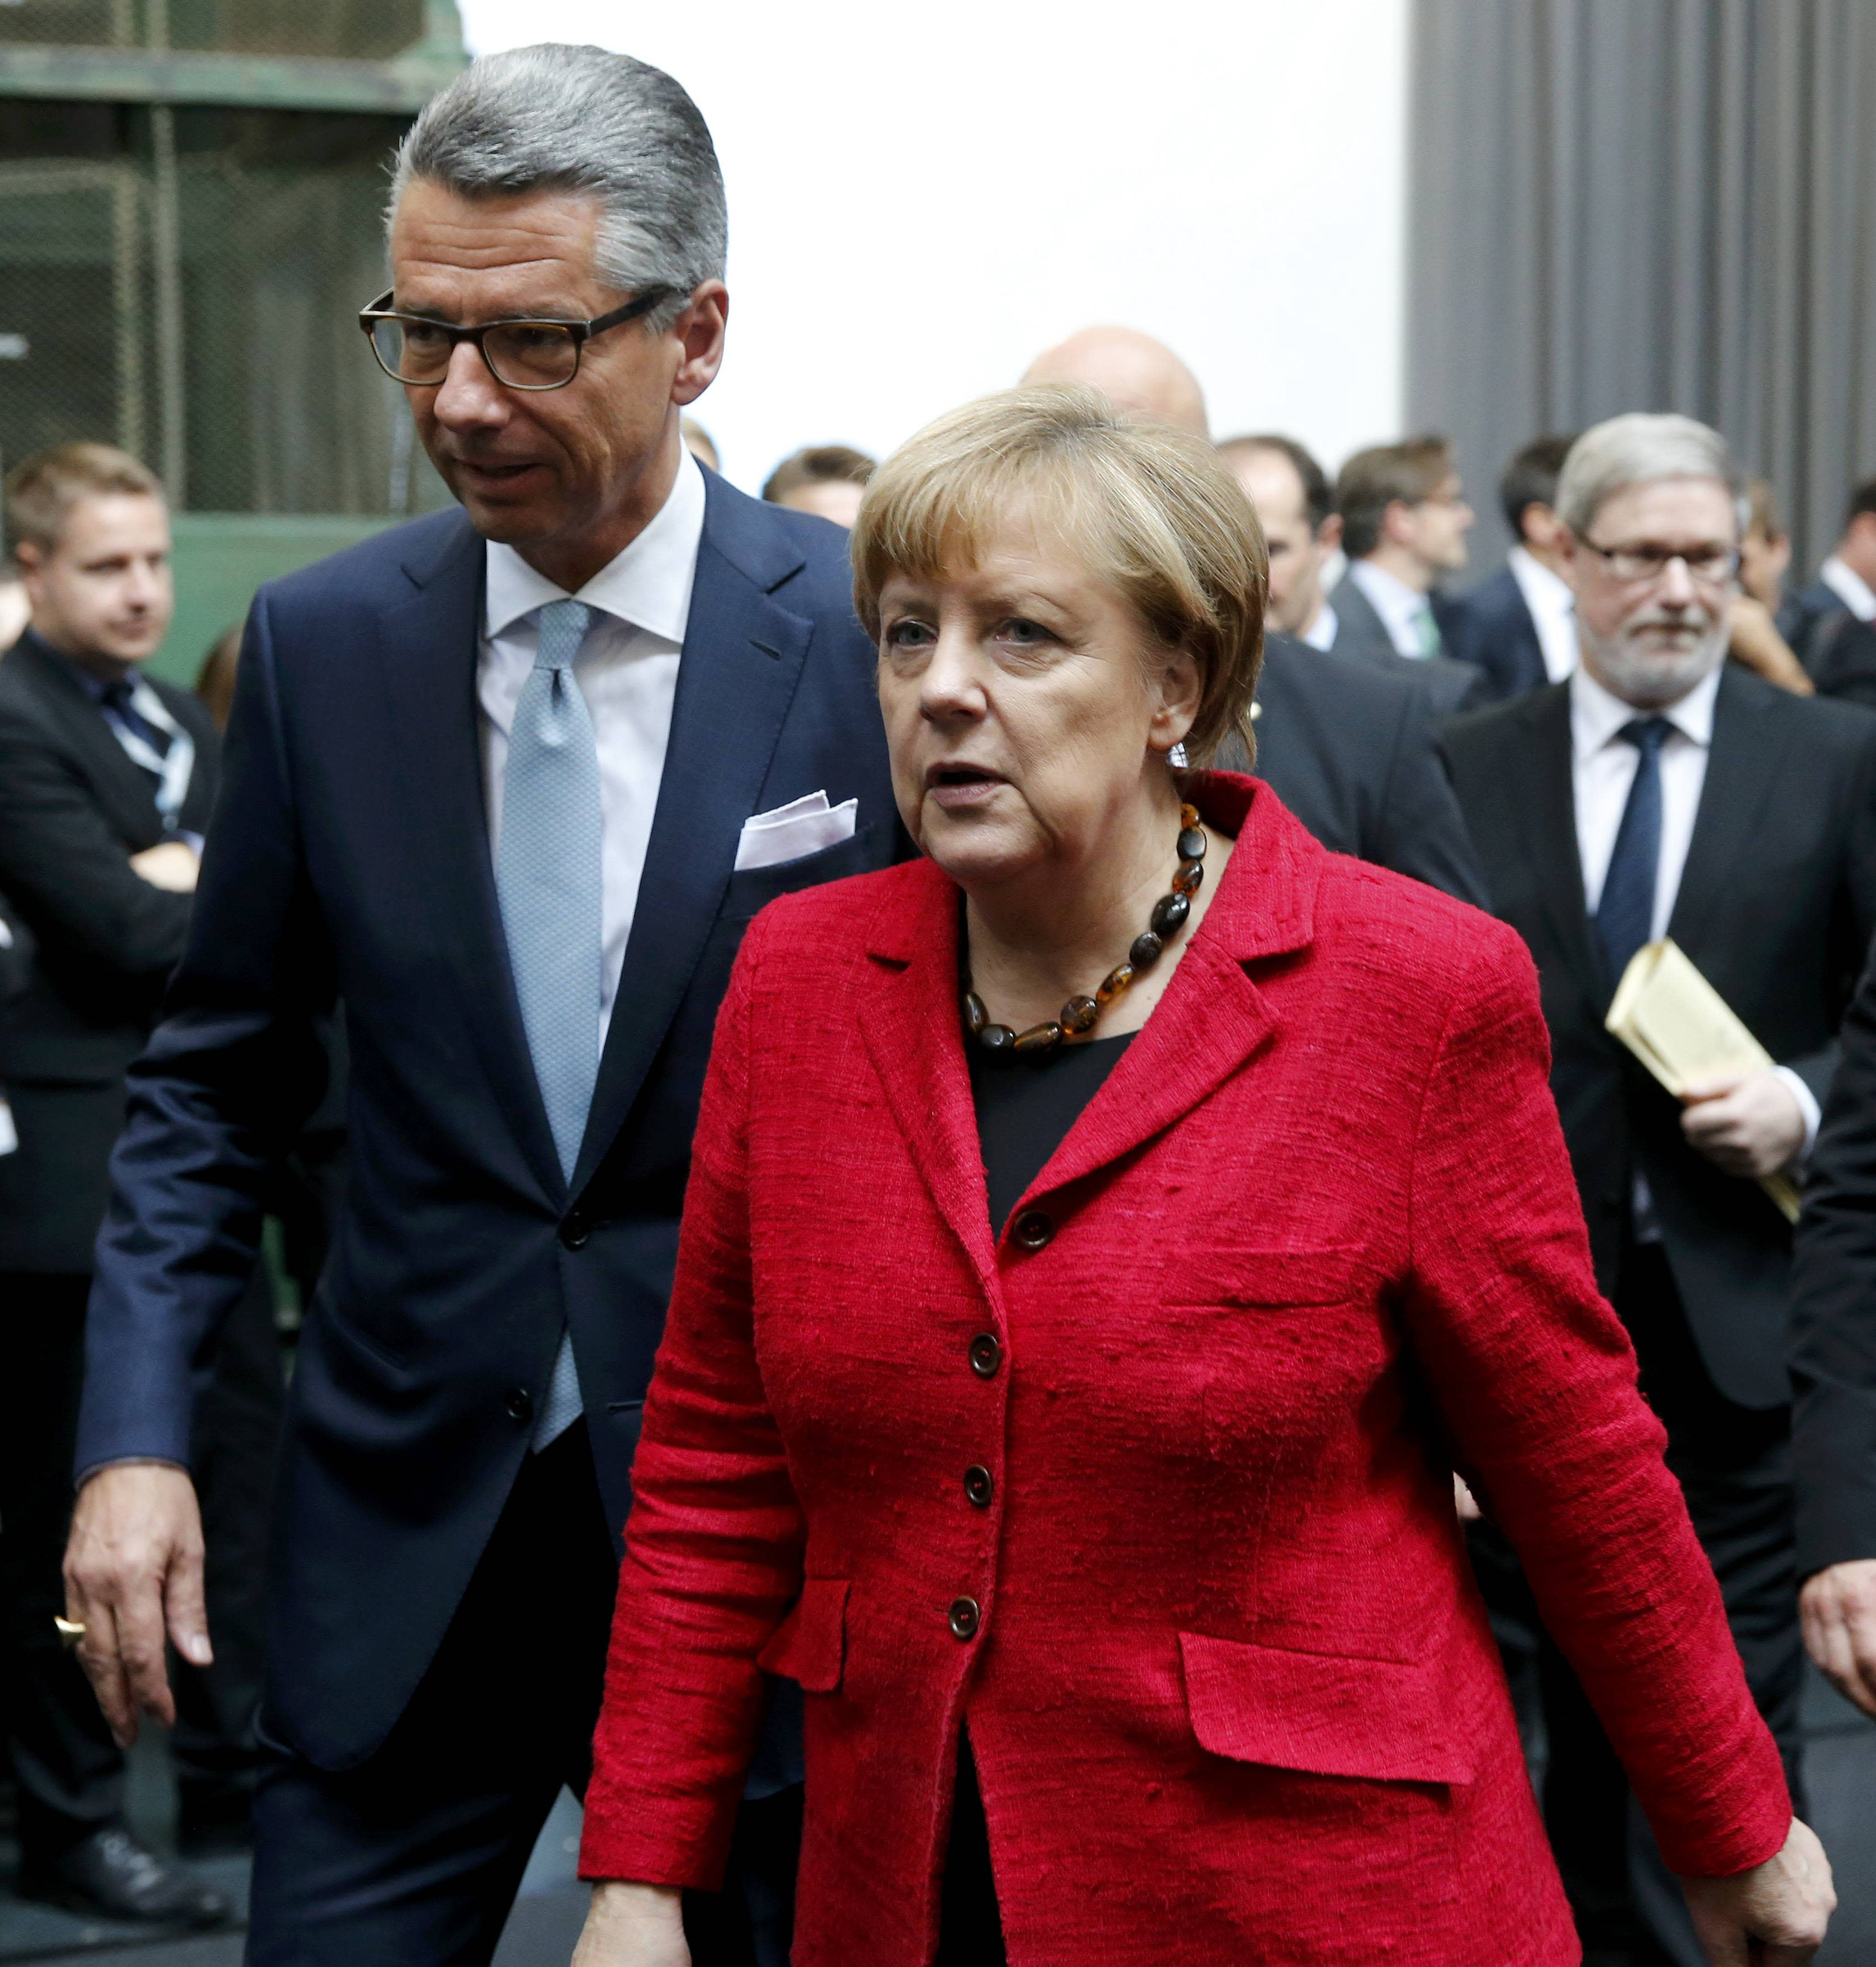 President of the Federation of German Industry (BDI) Ulrich Grillo (L) and German Chancellor Angela Merkel leave the BDI's conference in Berlin, Germany, November 3, 2015. Merkel reiterated on Tuesday that a European-wide approach was needed to tackle the refugee crisis and that a fair distribution of migrants among member states was vital. REUTERS/Fabrizio Bensch